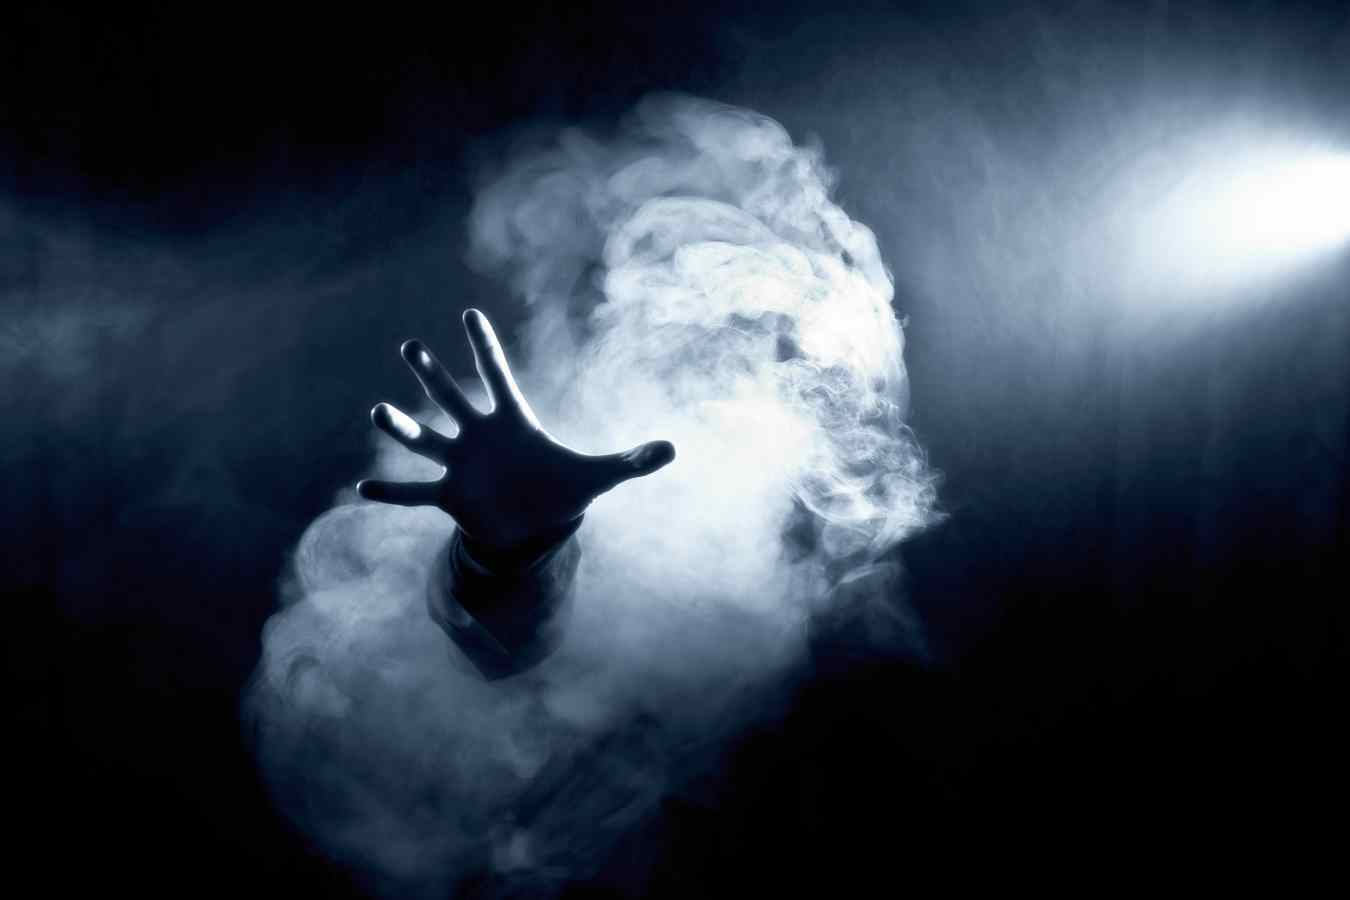 ghost-hand-smoke-lights-creepy-horror-fear-ghost-hand-smoke-lights-spooky-horror-fear